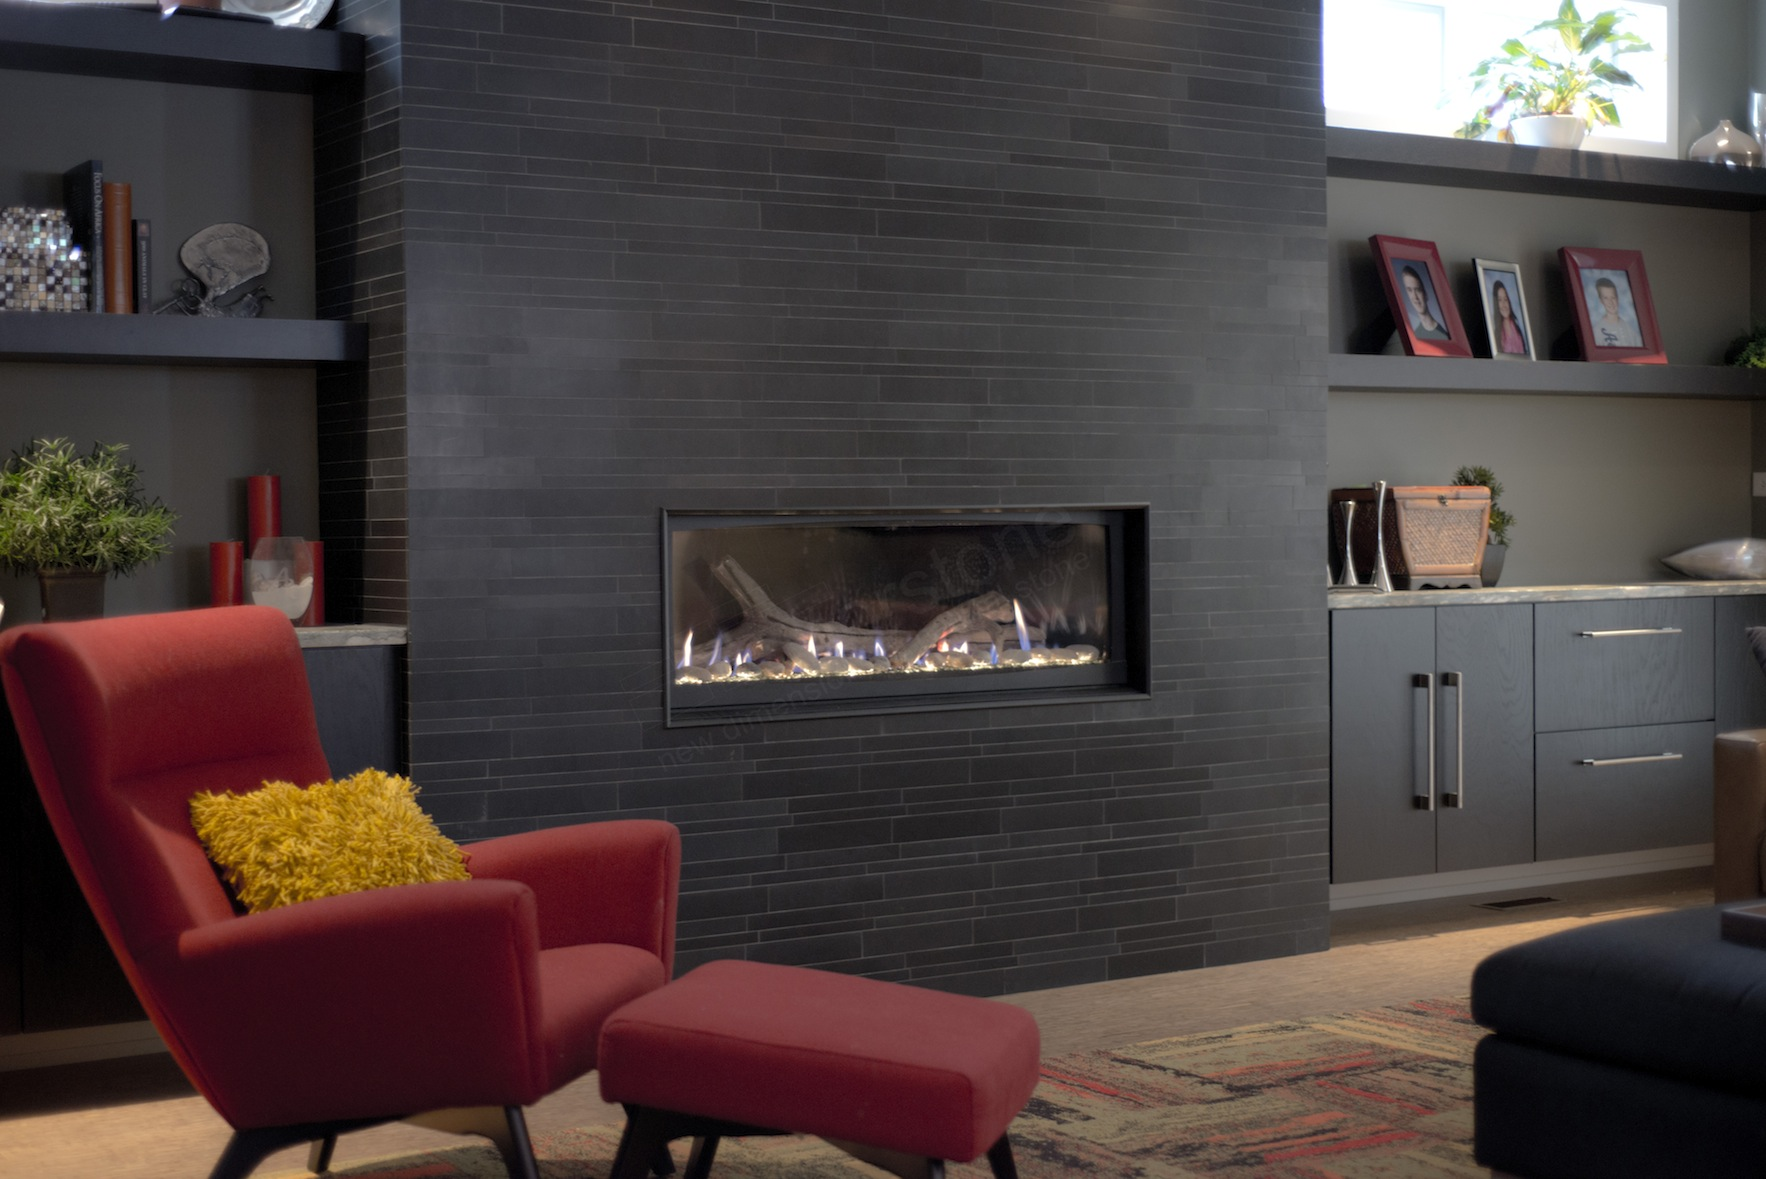 Norstone Lynia IL tiles in Ebony on a modern stone fireplace project in Chicago